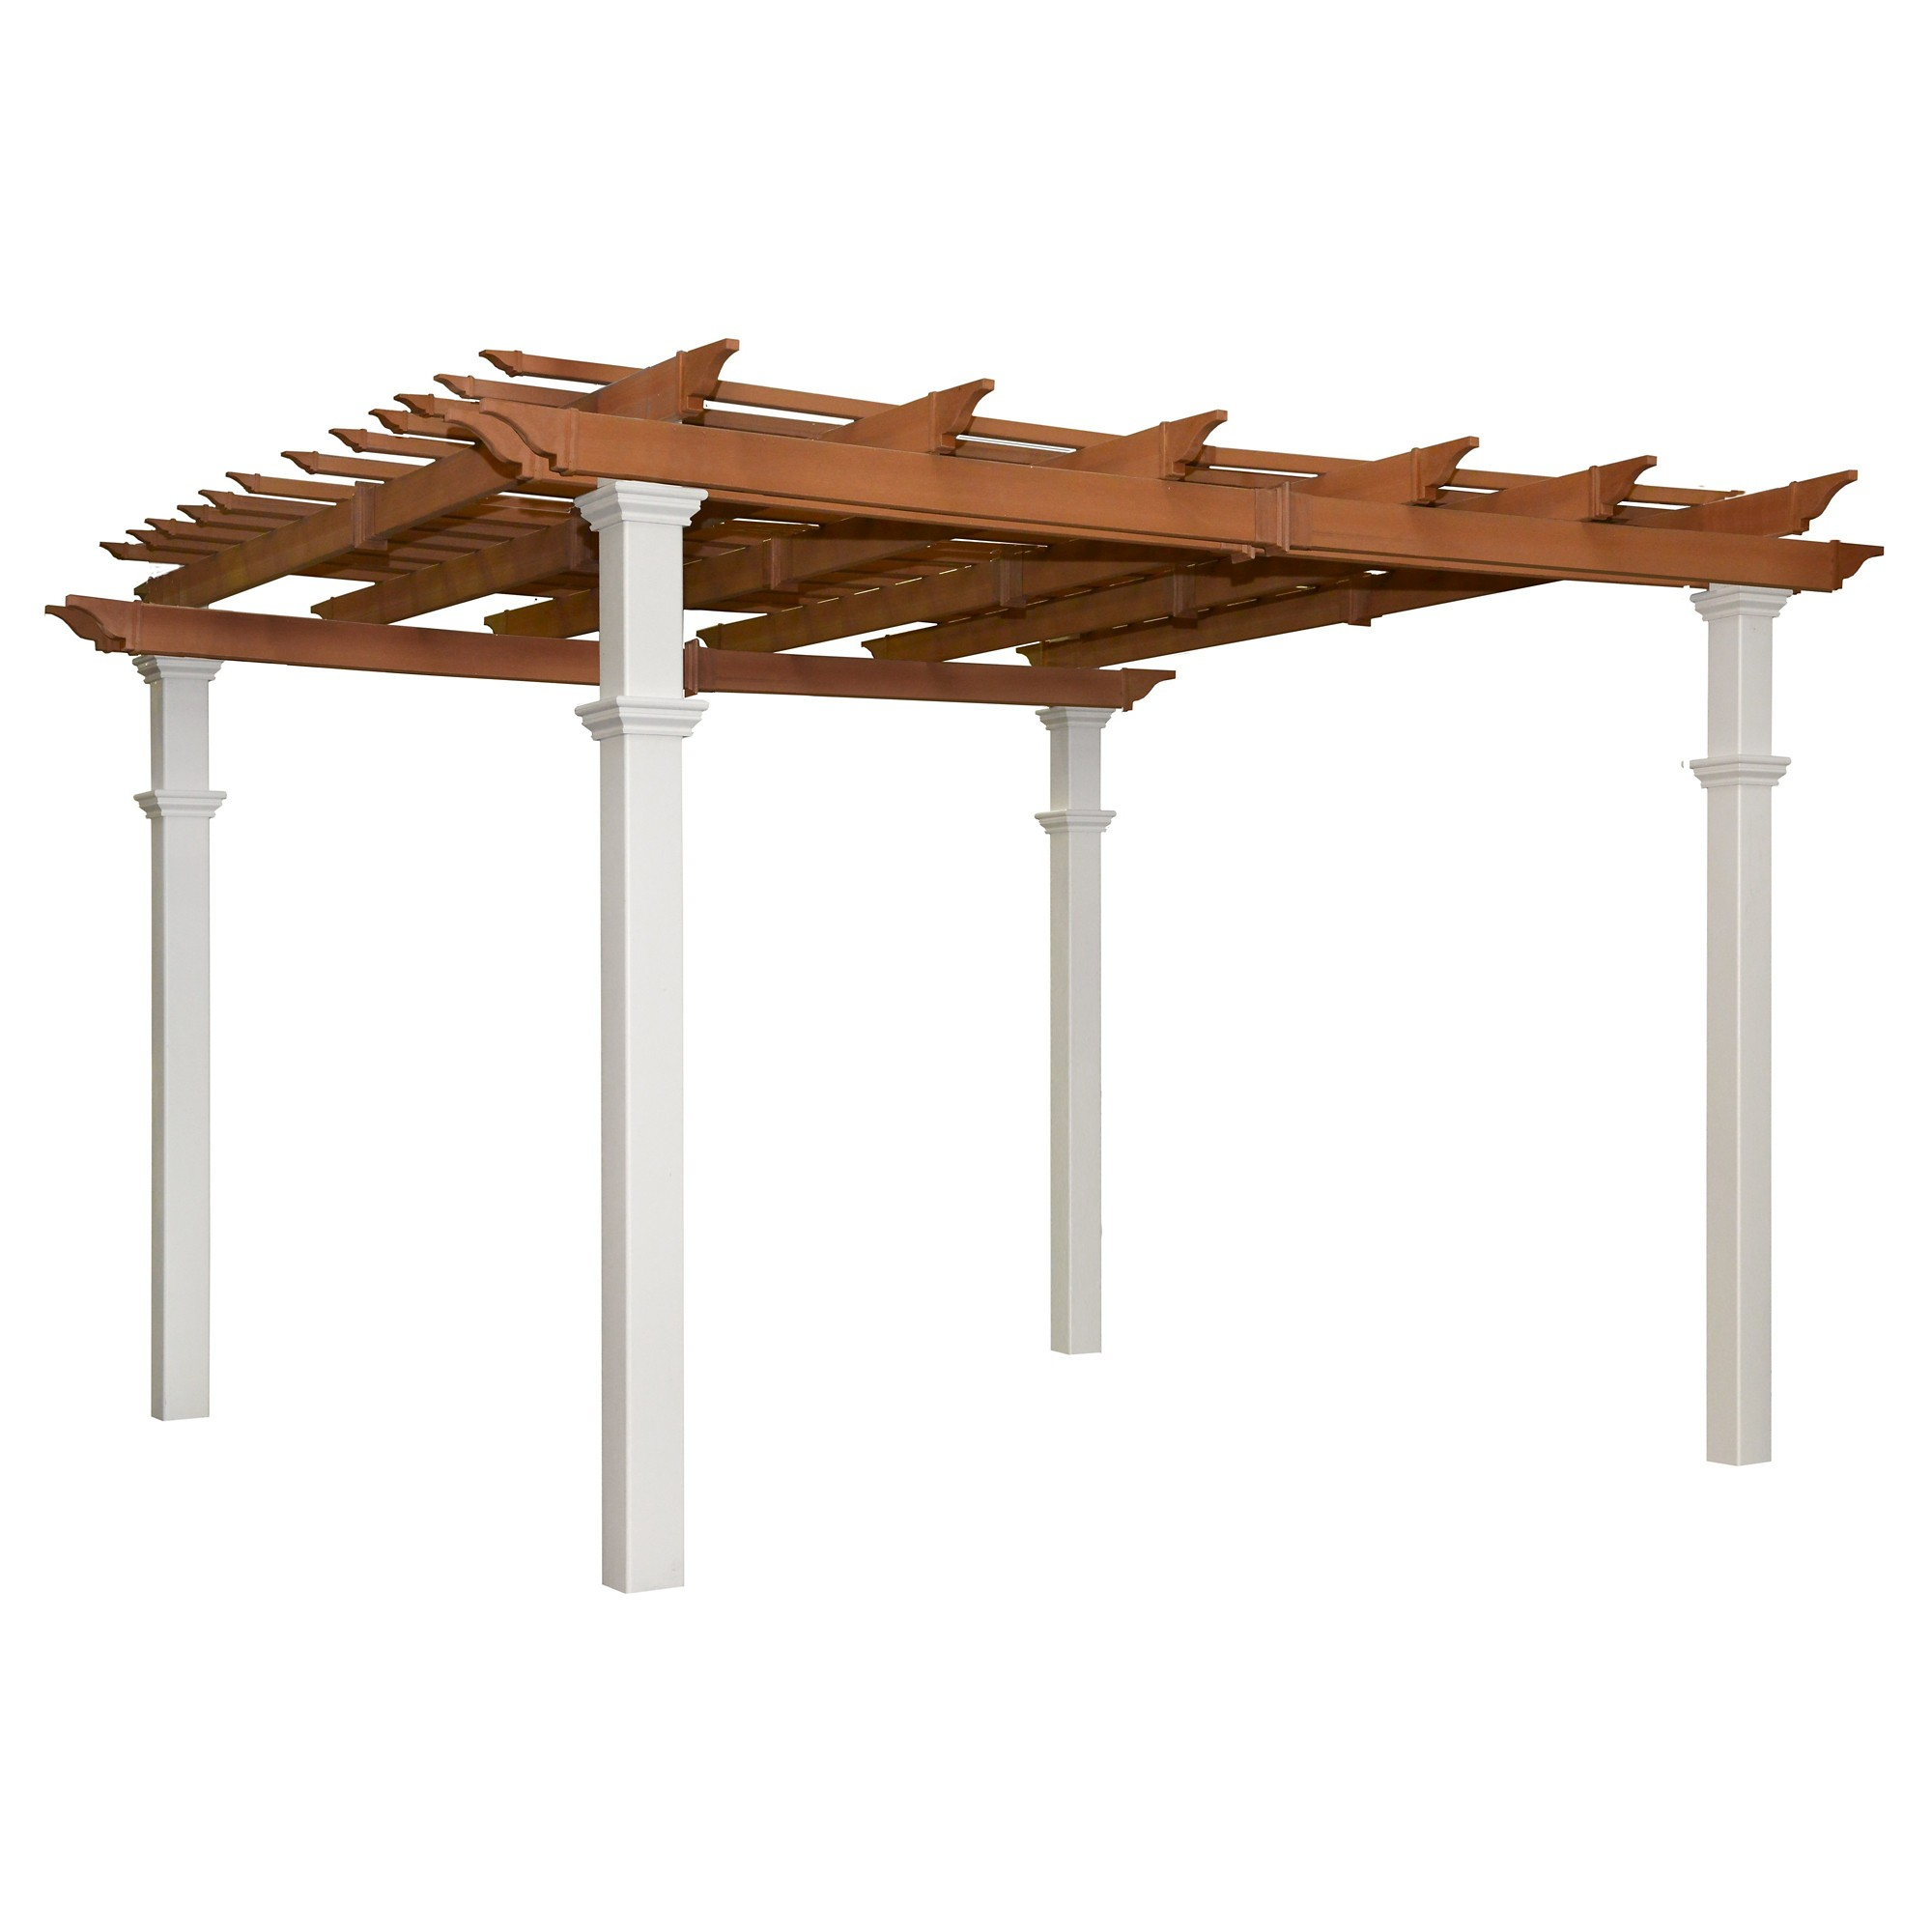 Bordeaux Two Tone 10 X 10 Pergola New England Arbors White Pergola New England Arbors Pergola Patio